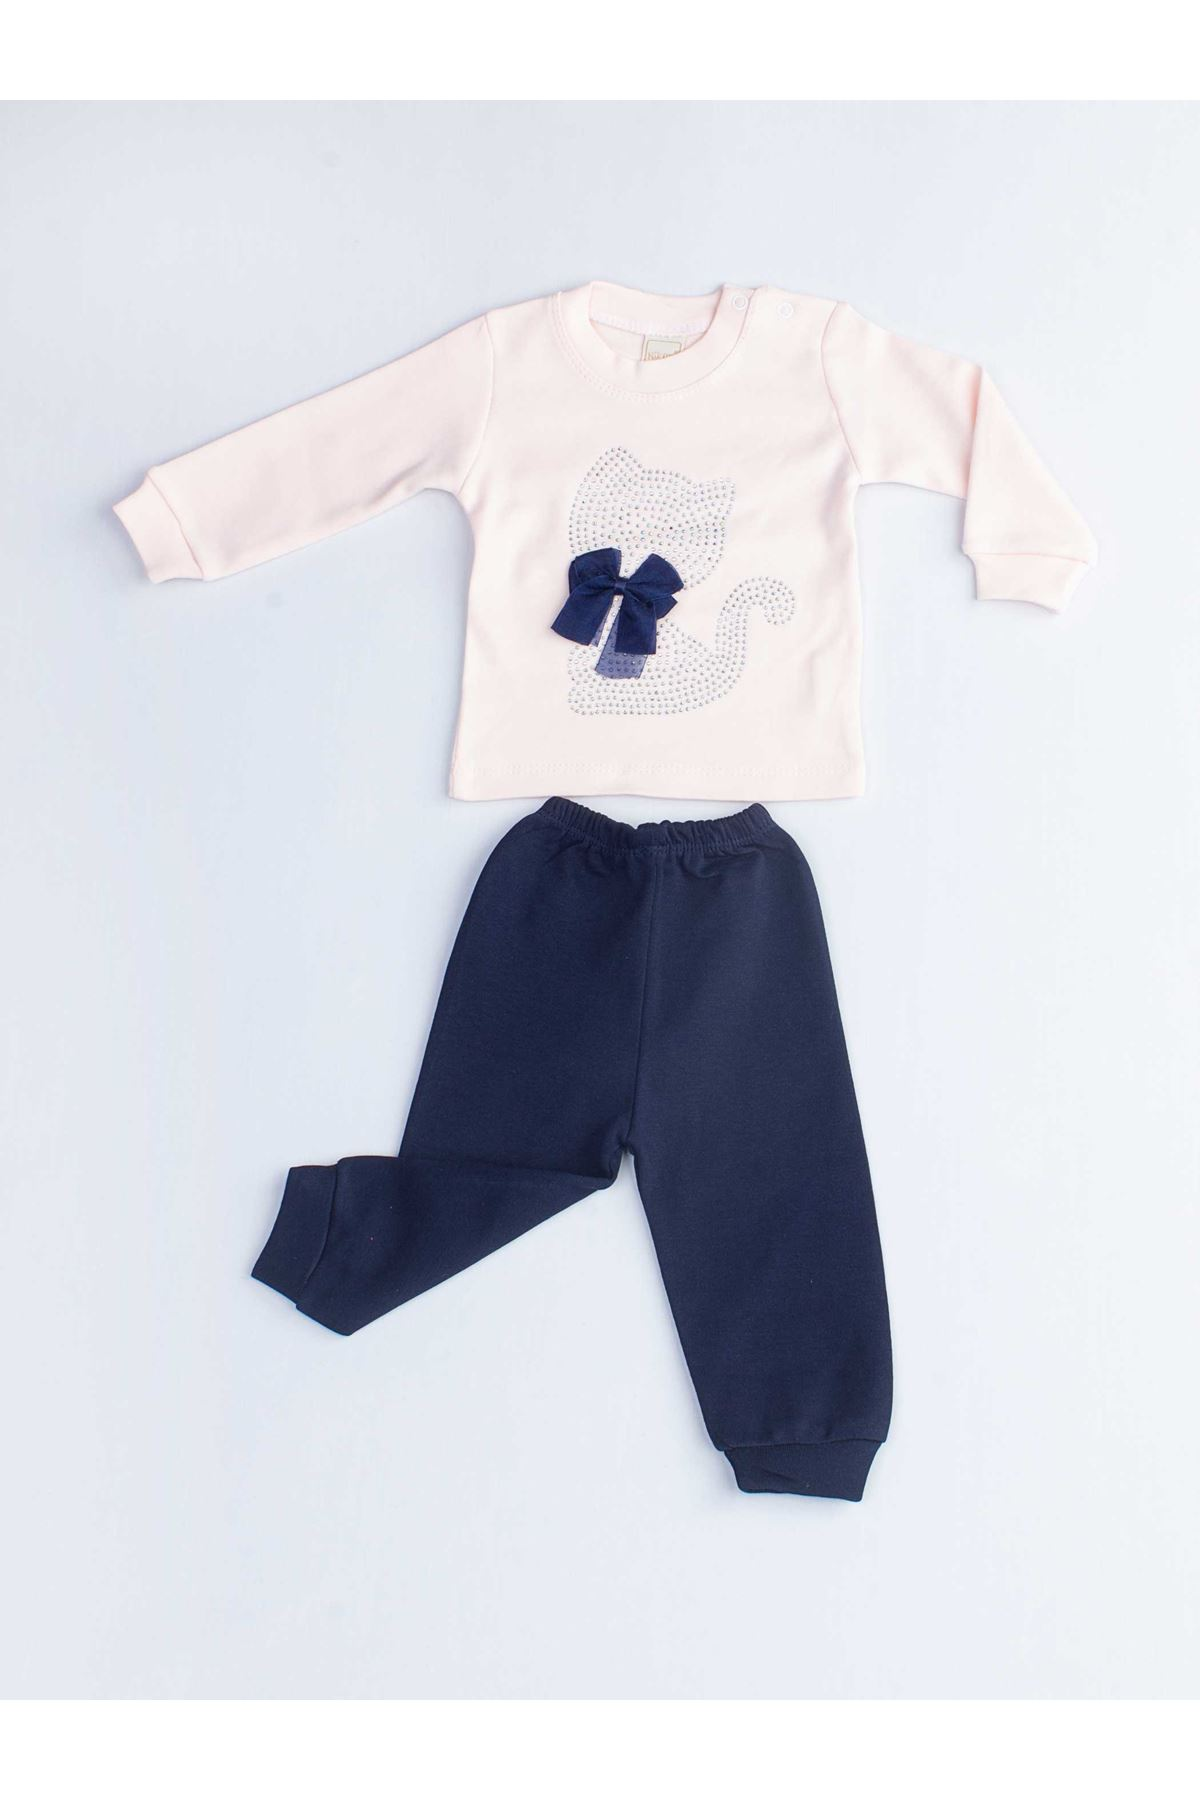 Powder Pink Navy Blue Baby Girl 2 Piece Set Tracksuit Bottom Babies Girls Wear Top Outfit Cotton Casual Casual Outfit models